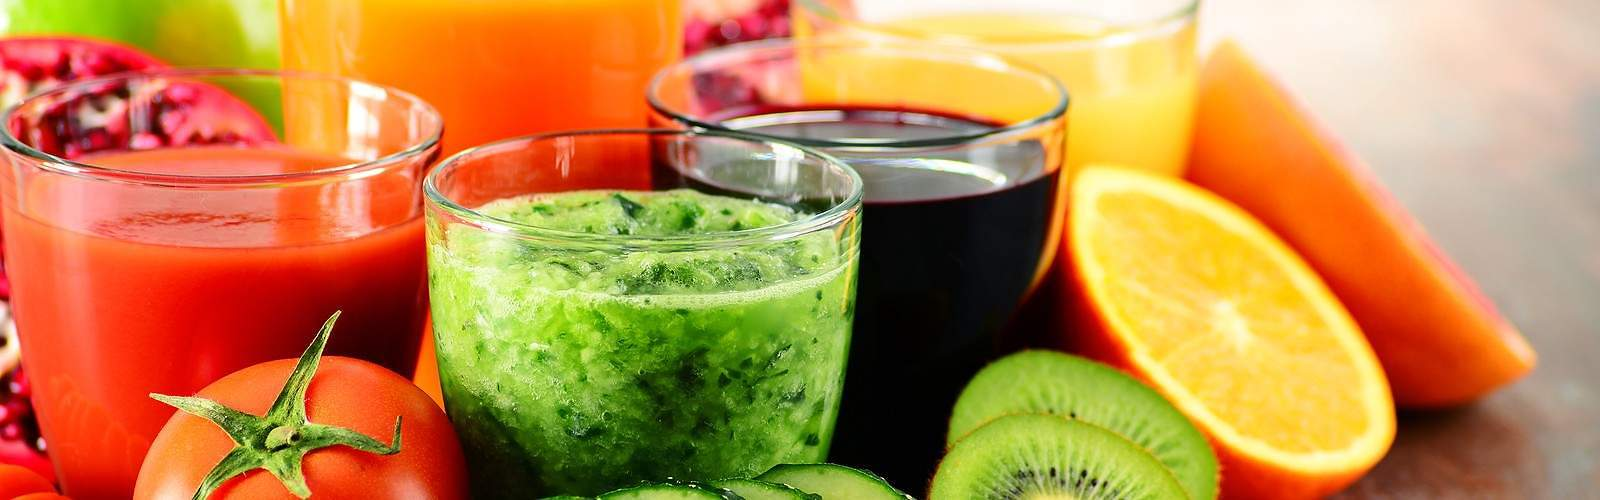 Detoxifying and Cleansing